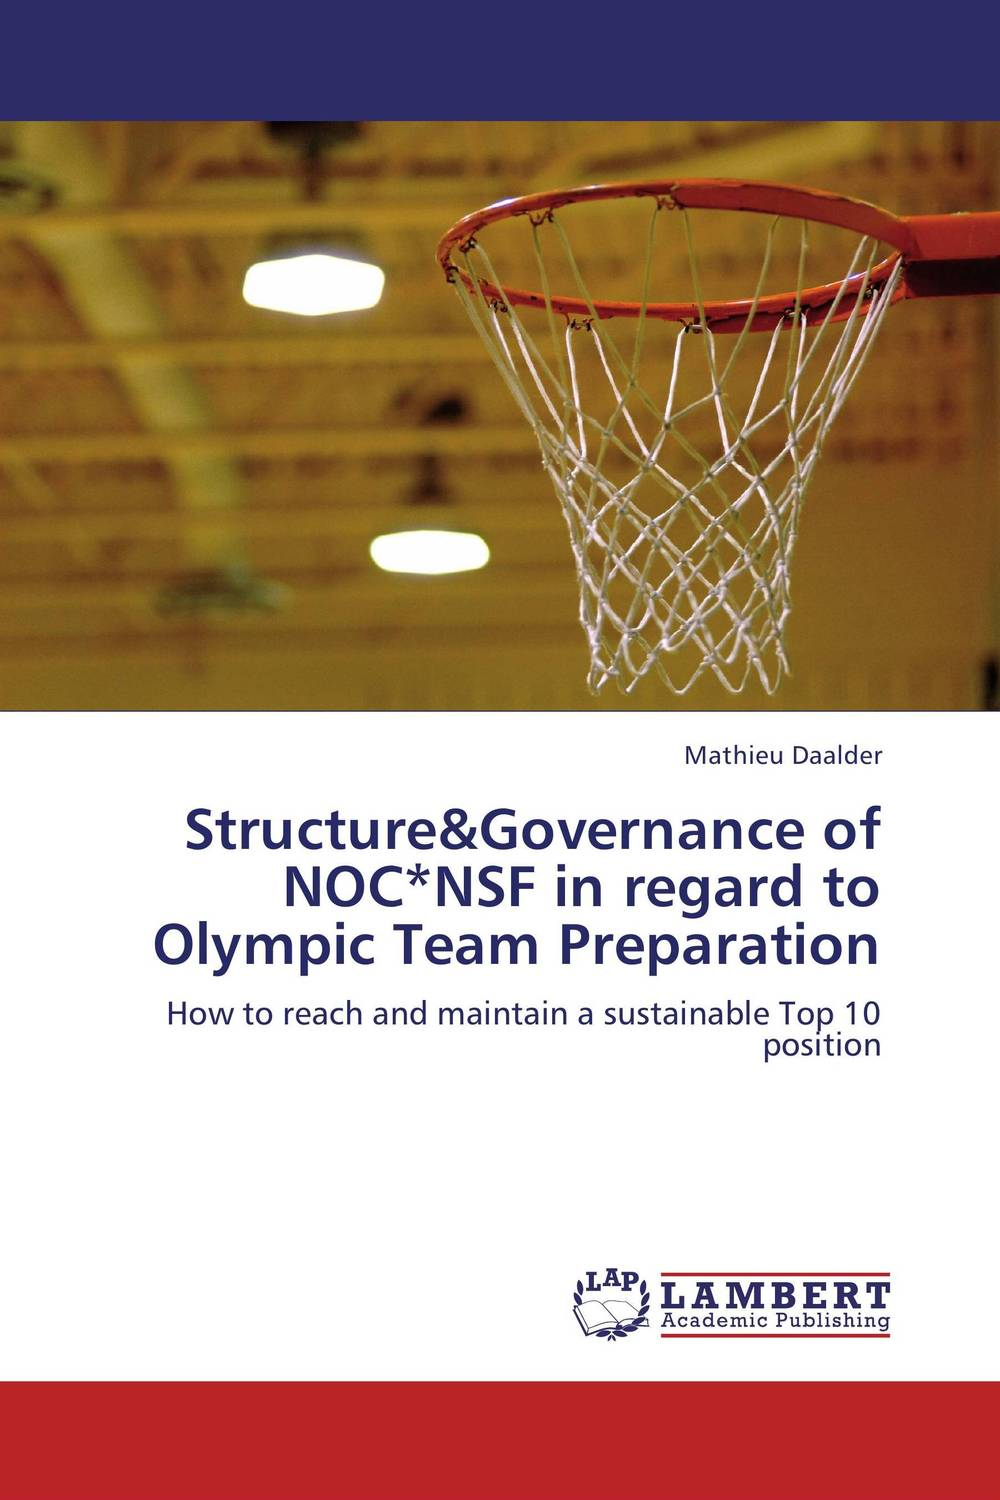 Structure&Governance of NOC*NSF in regard to Olympic Team Preparation new lcd display matrix for 7 digma plane 7 6 3g ps7076mg tablet inner lcd screen panel glass sensor replacement free shipping